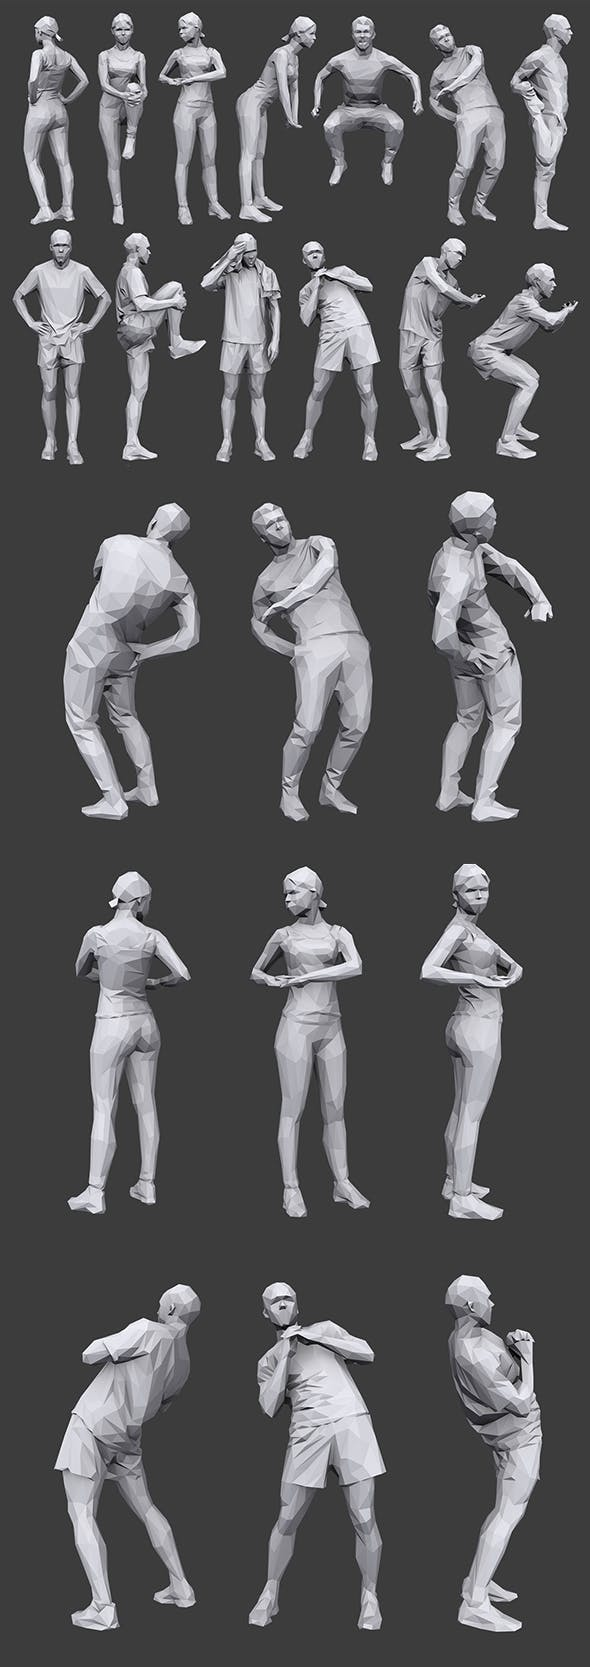 Lowpoly People Fitness Pack - 3DOcean Item for Sale